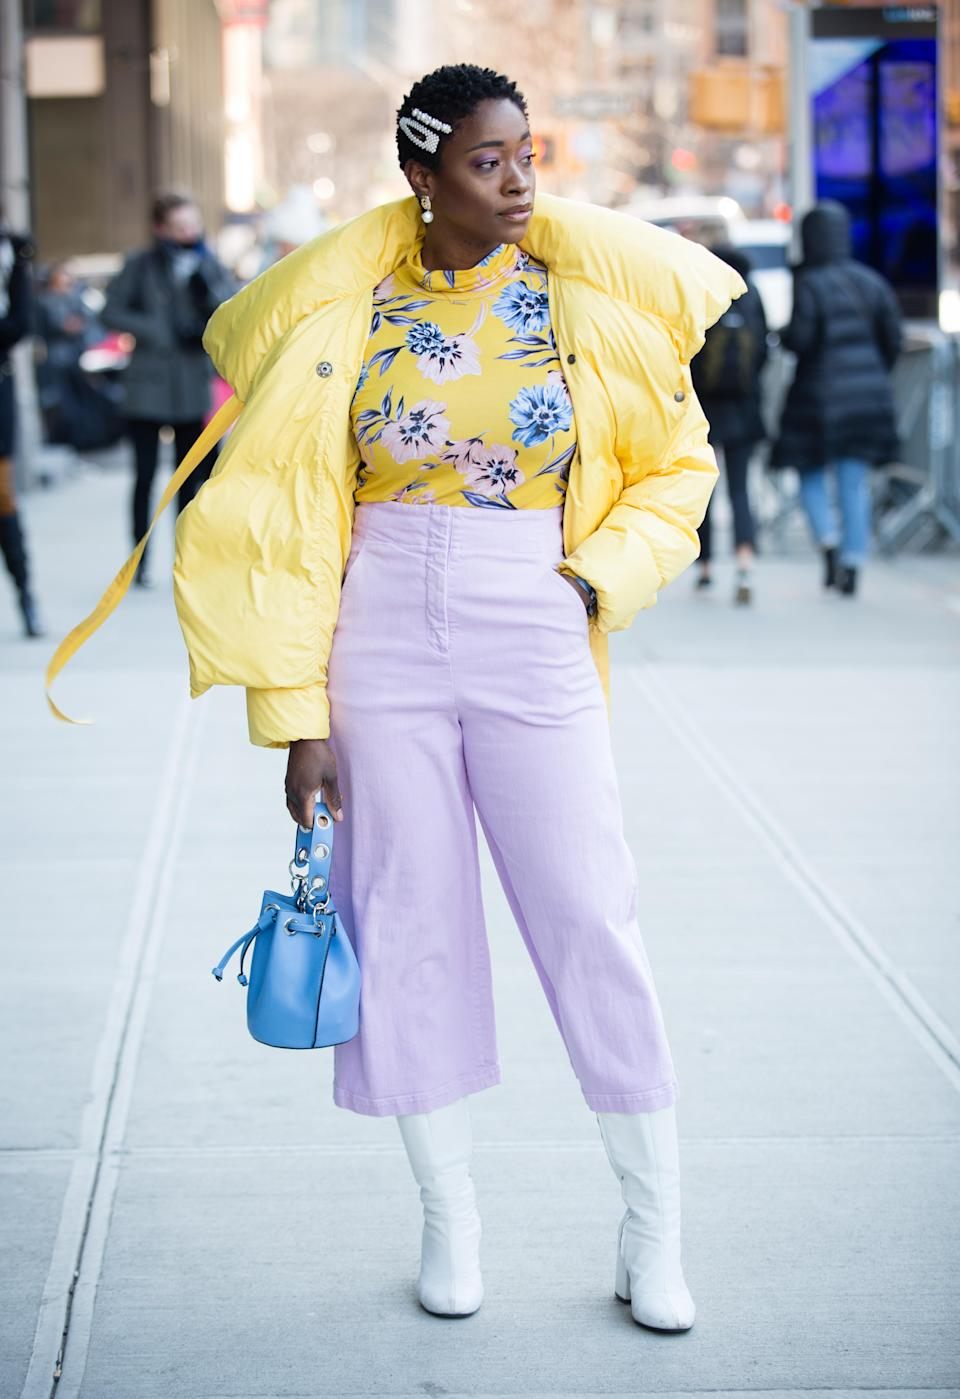 <p>A guest poses outside of the Son Jung Wang show wearing a yellow coat, yellow floral print shirt, light purple pants, white shoes and holding a blue bag. <em>[Photo: Getty]</em> </p>